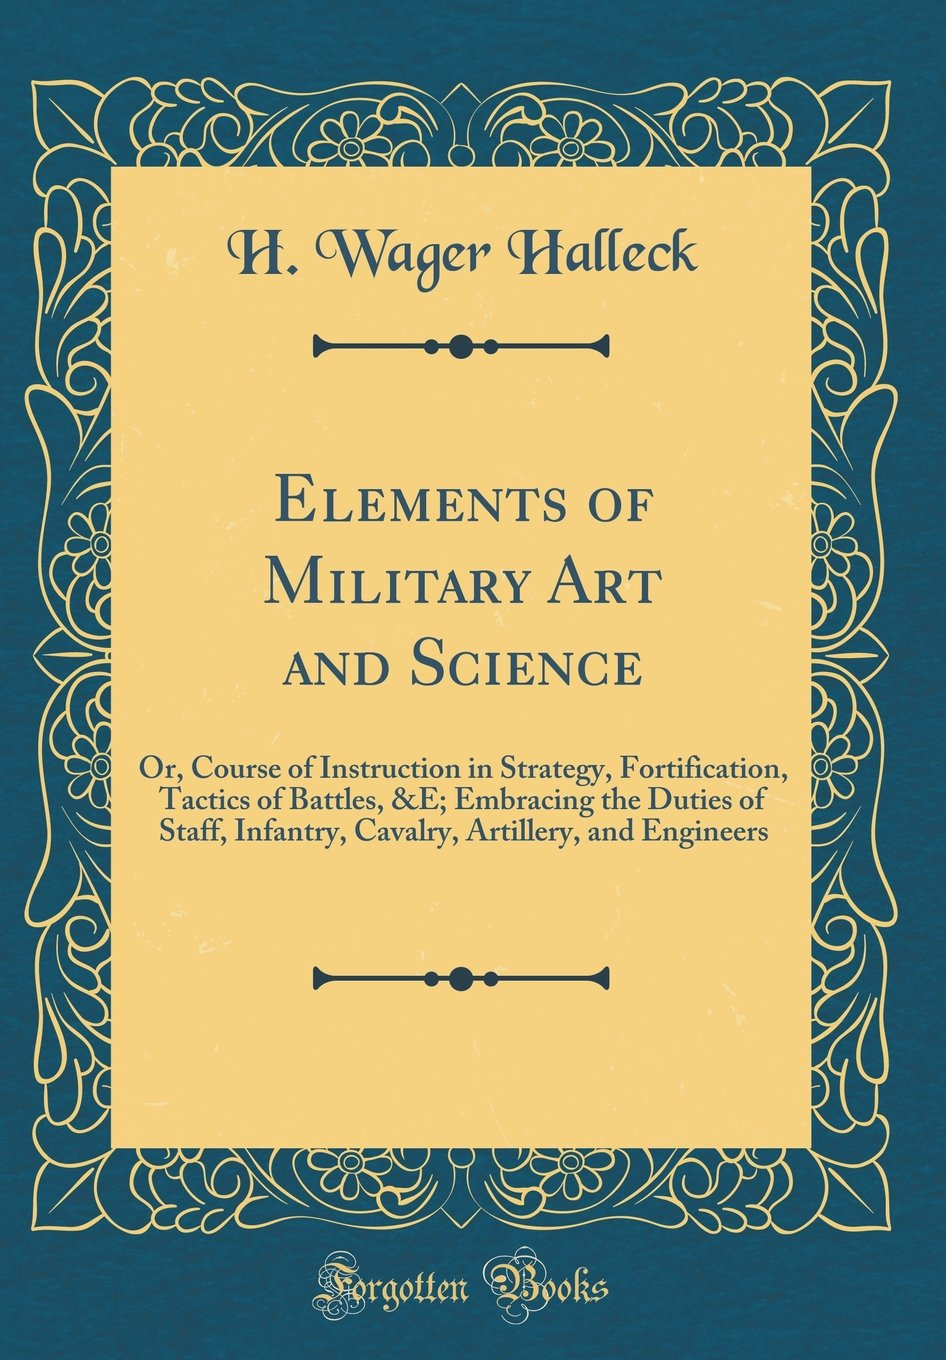 Elements of Military Art and Science: Or, Course of Instruction in Strategy, Fortification, Tactics of Battles, E; Embracing the Duties of Staff. Artillery, and Engineers (Classic Reprint) pdf